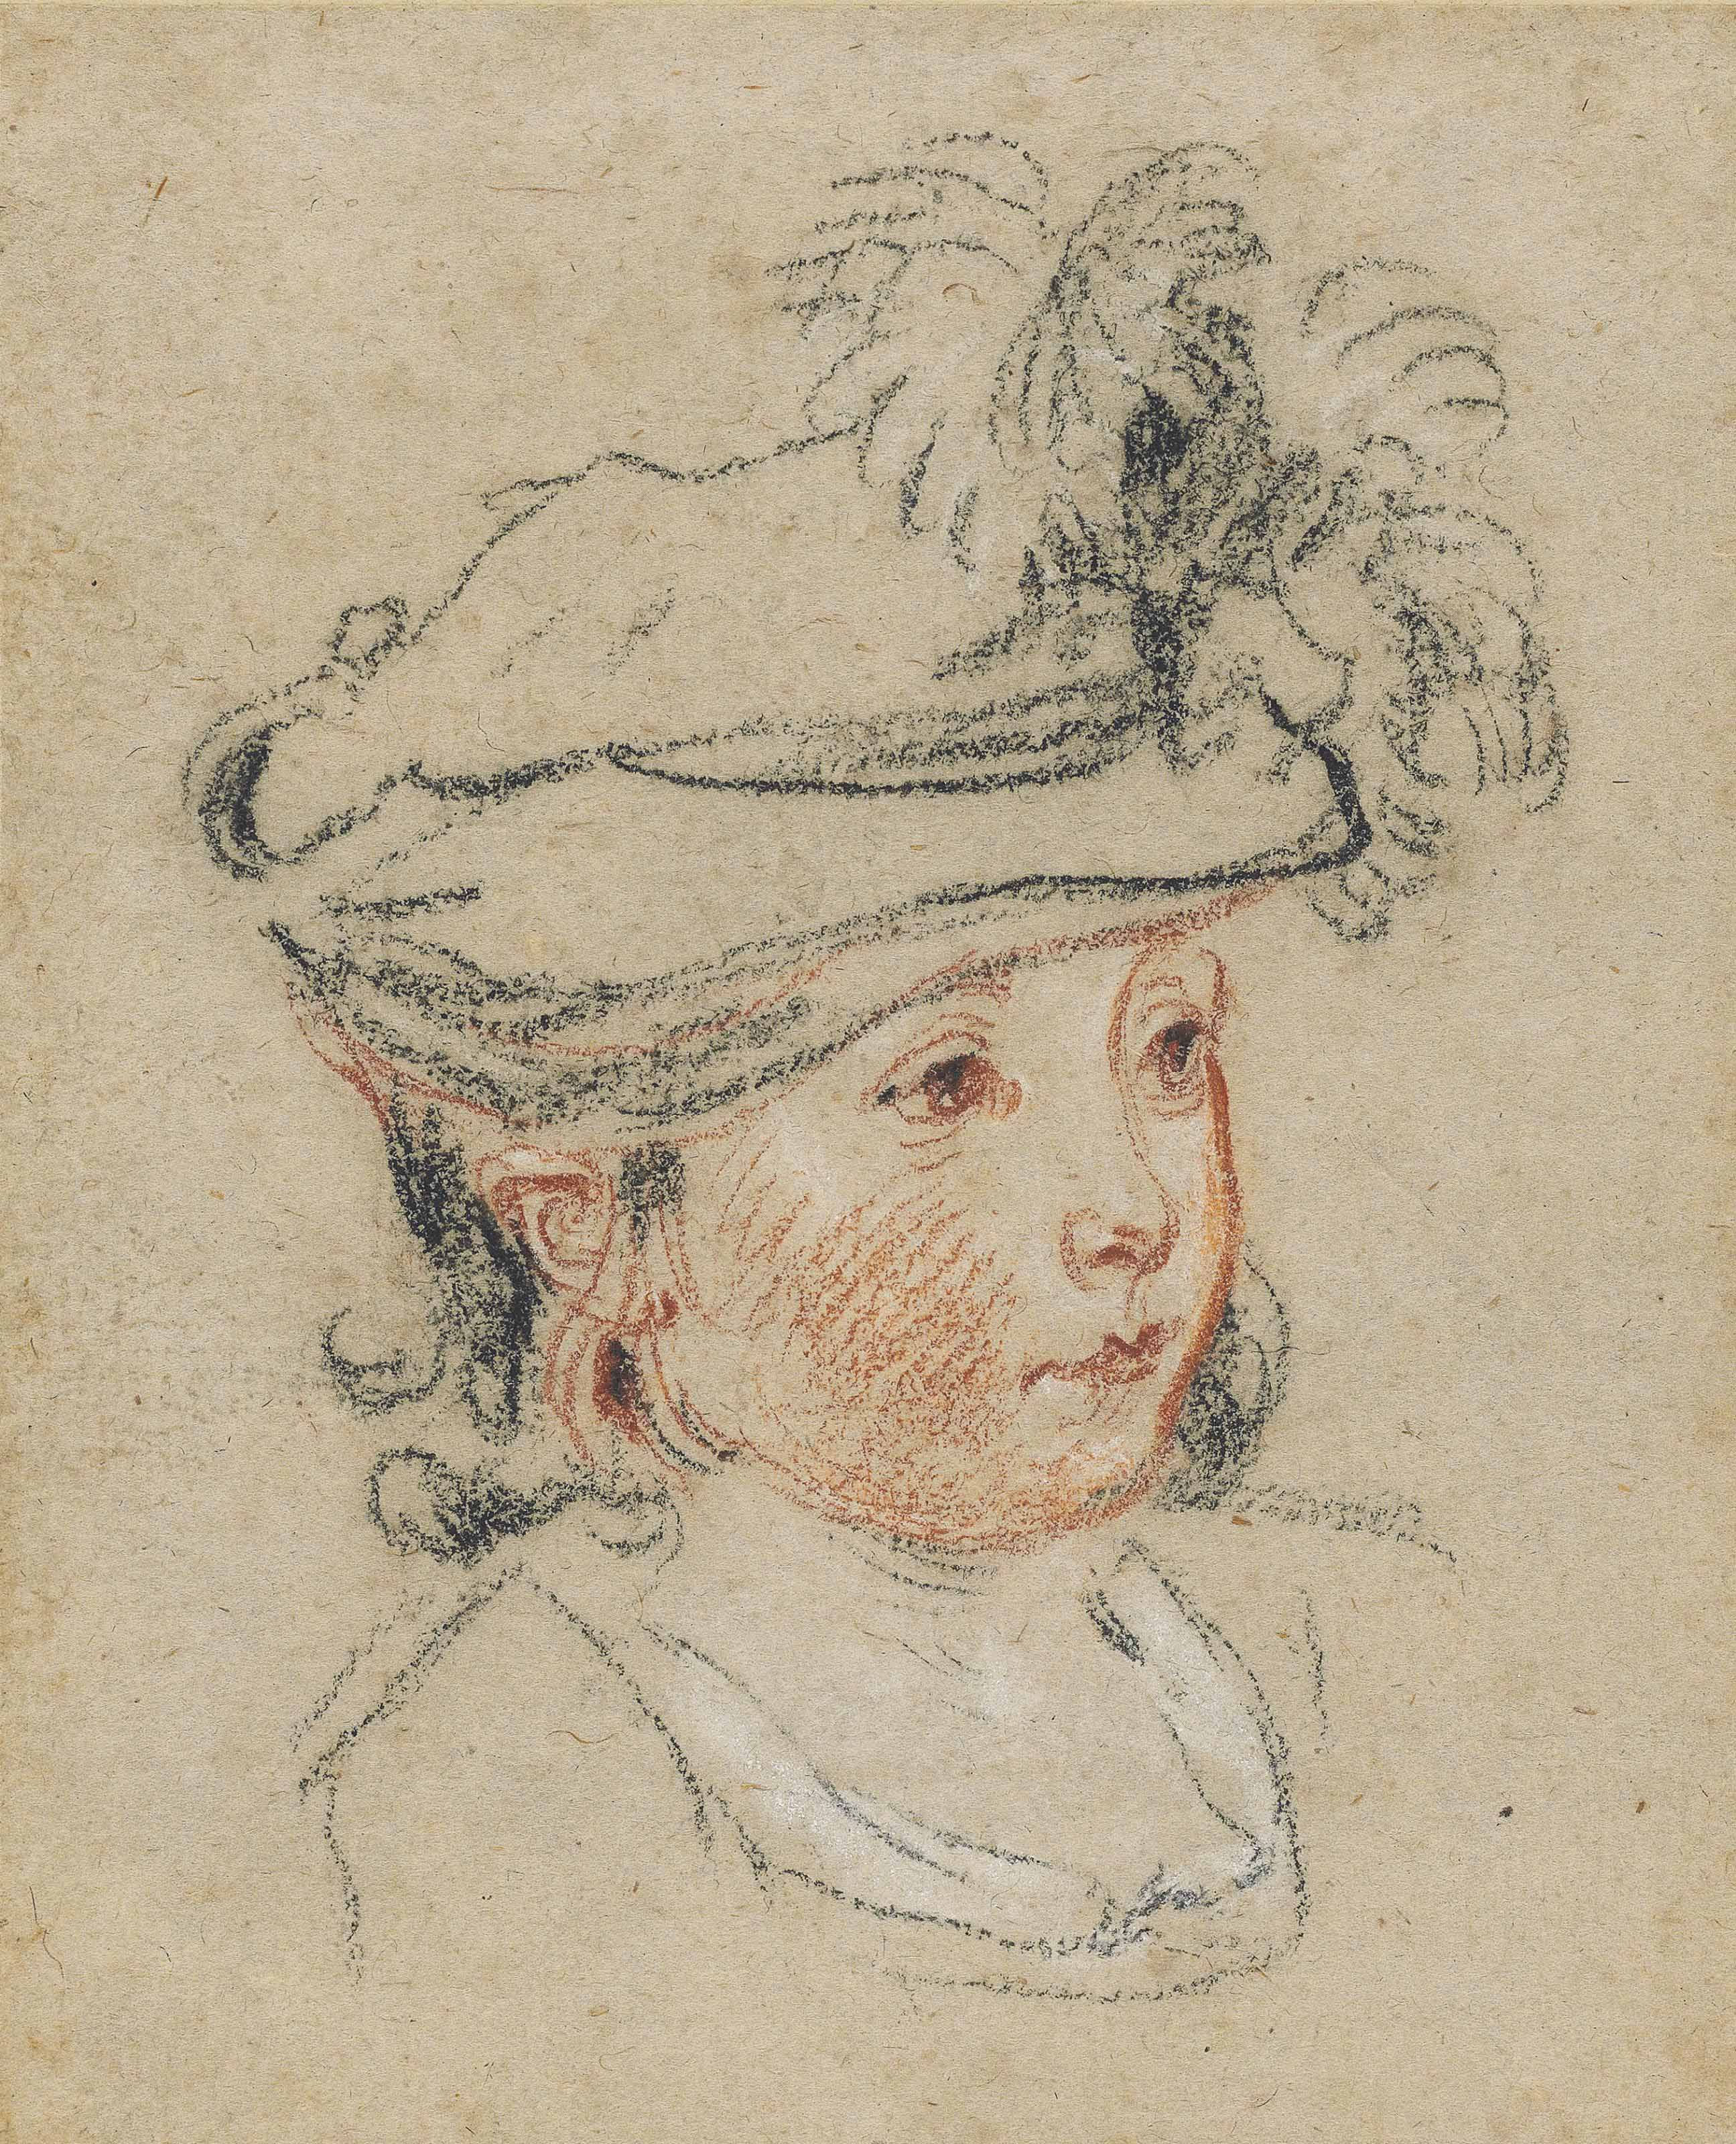 Head of a child in a feathered hat, looking to the right